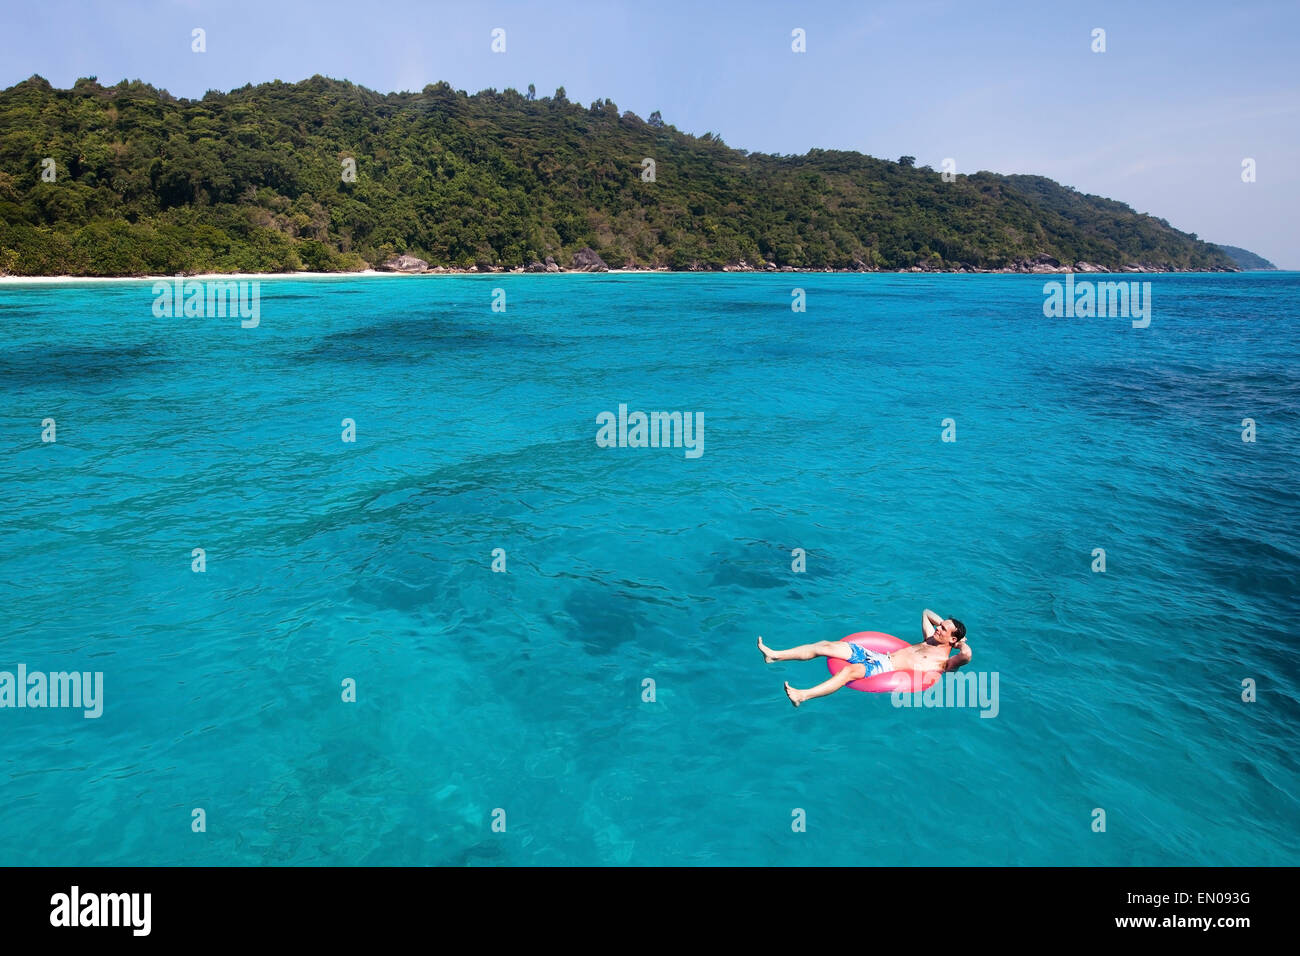 travel insurance concept, man swimming in lifebuoy on paradise beach - Stock Image